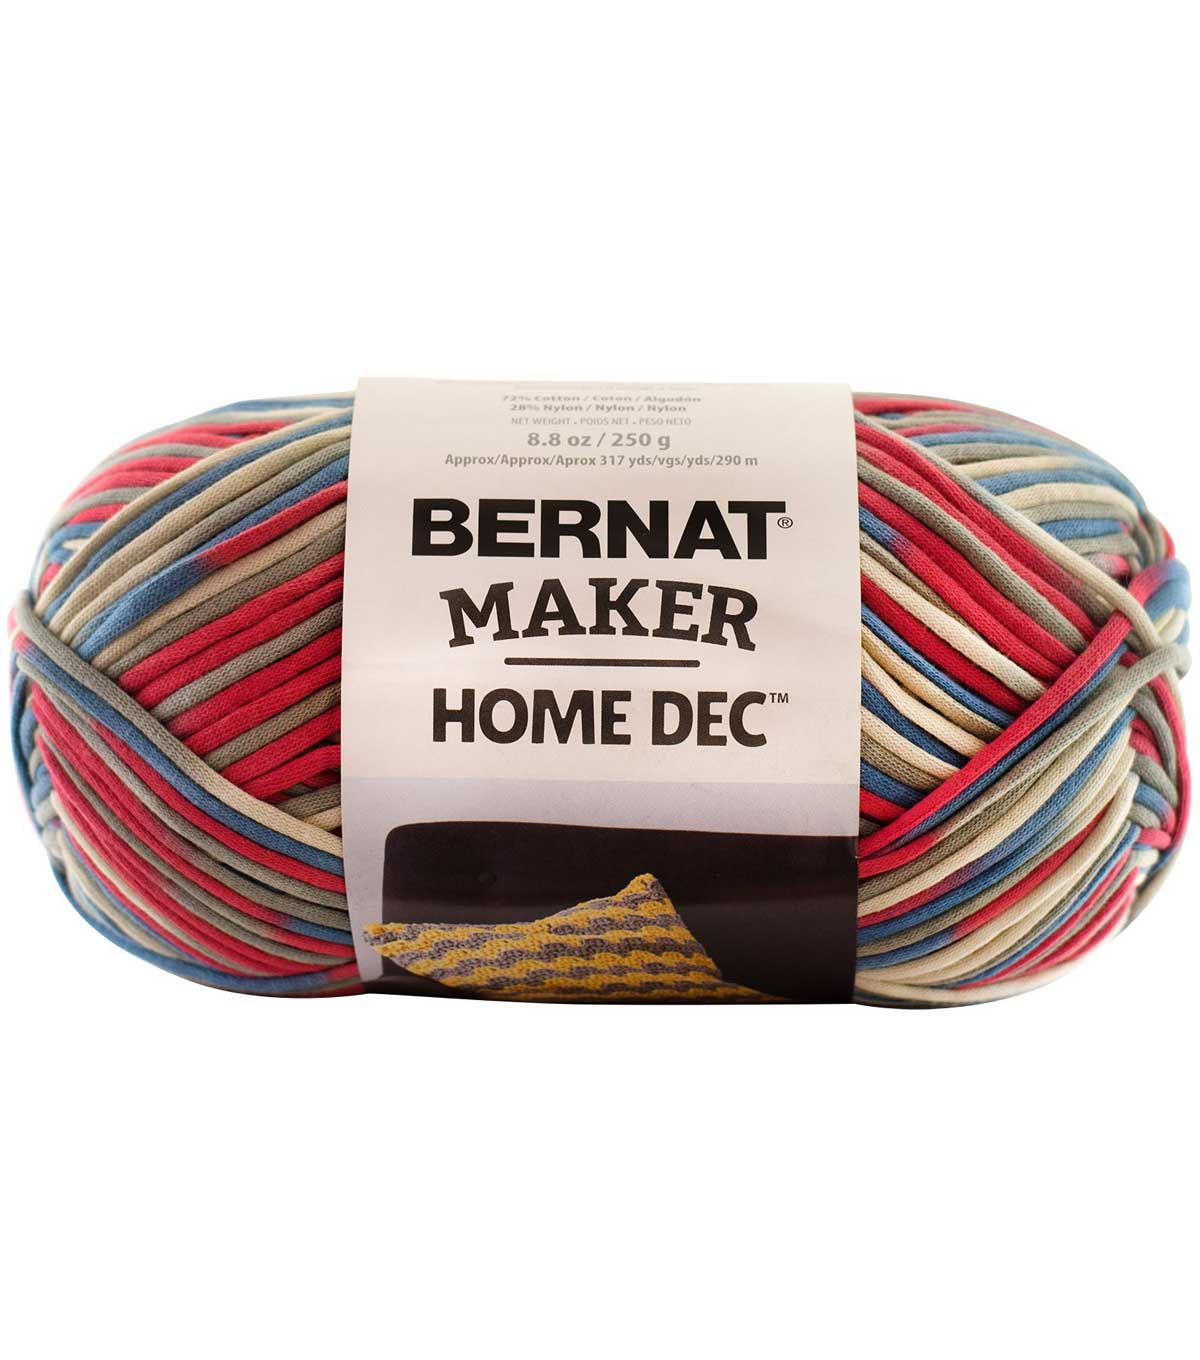 Bernat® Maker Home Dec™ Yarn